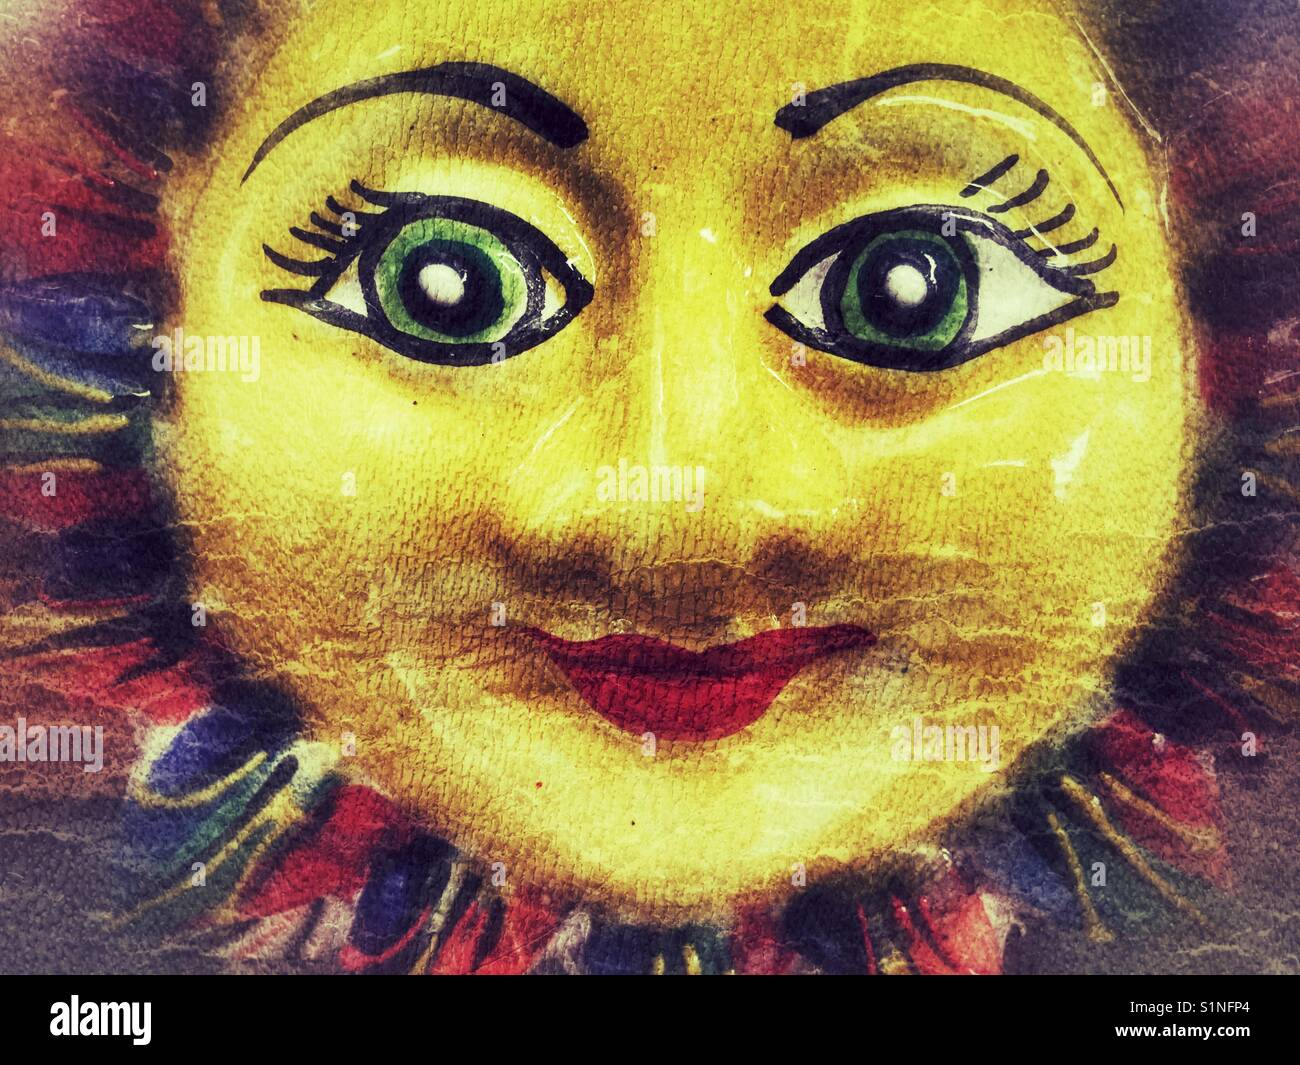 Fantastic Ceramic Sun Wall Art Pictures Inspiration - The Wall Art ...